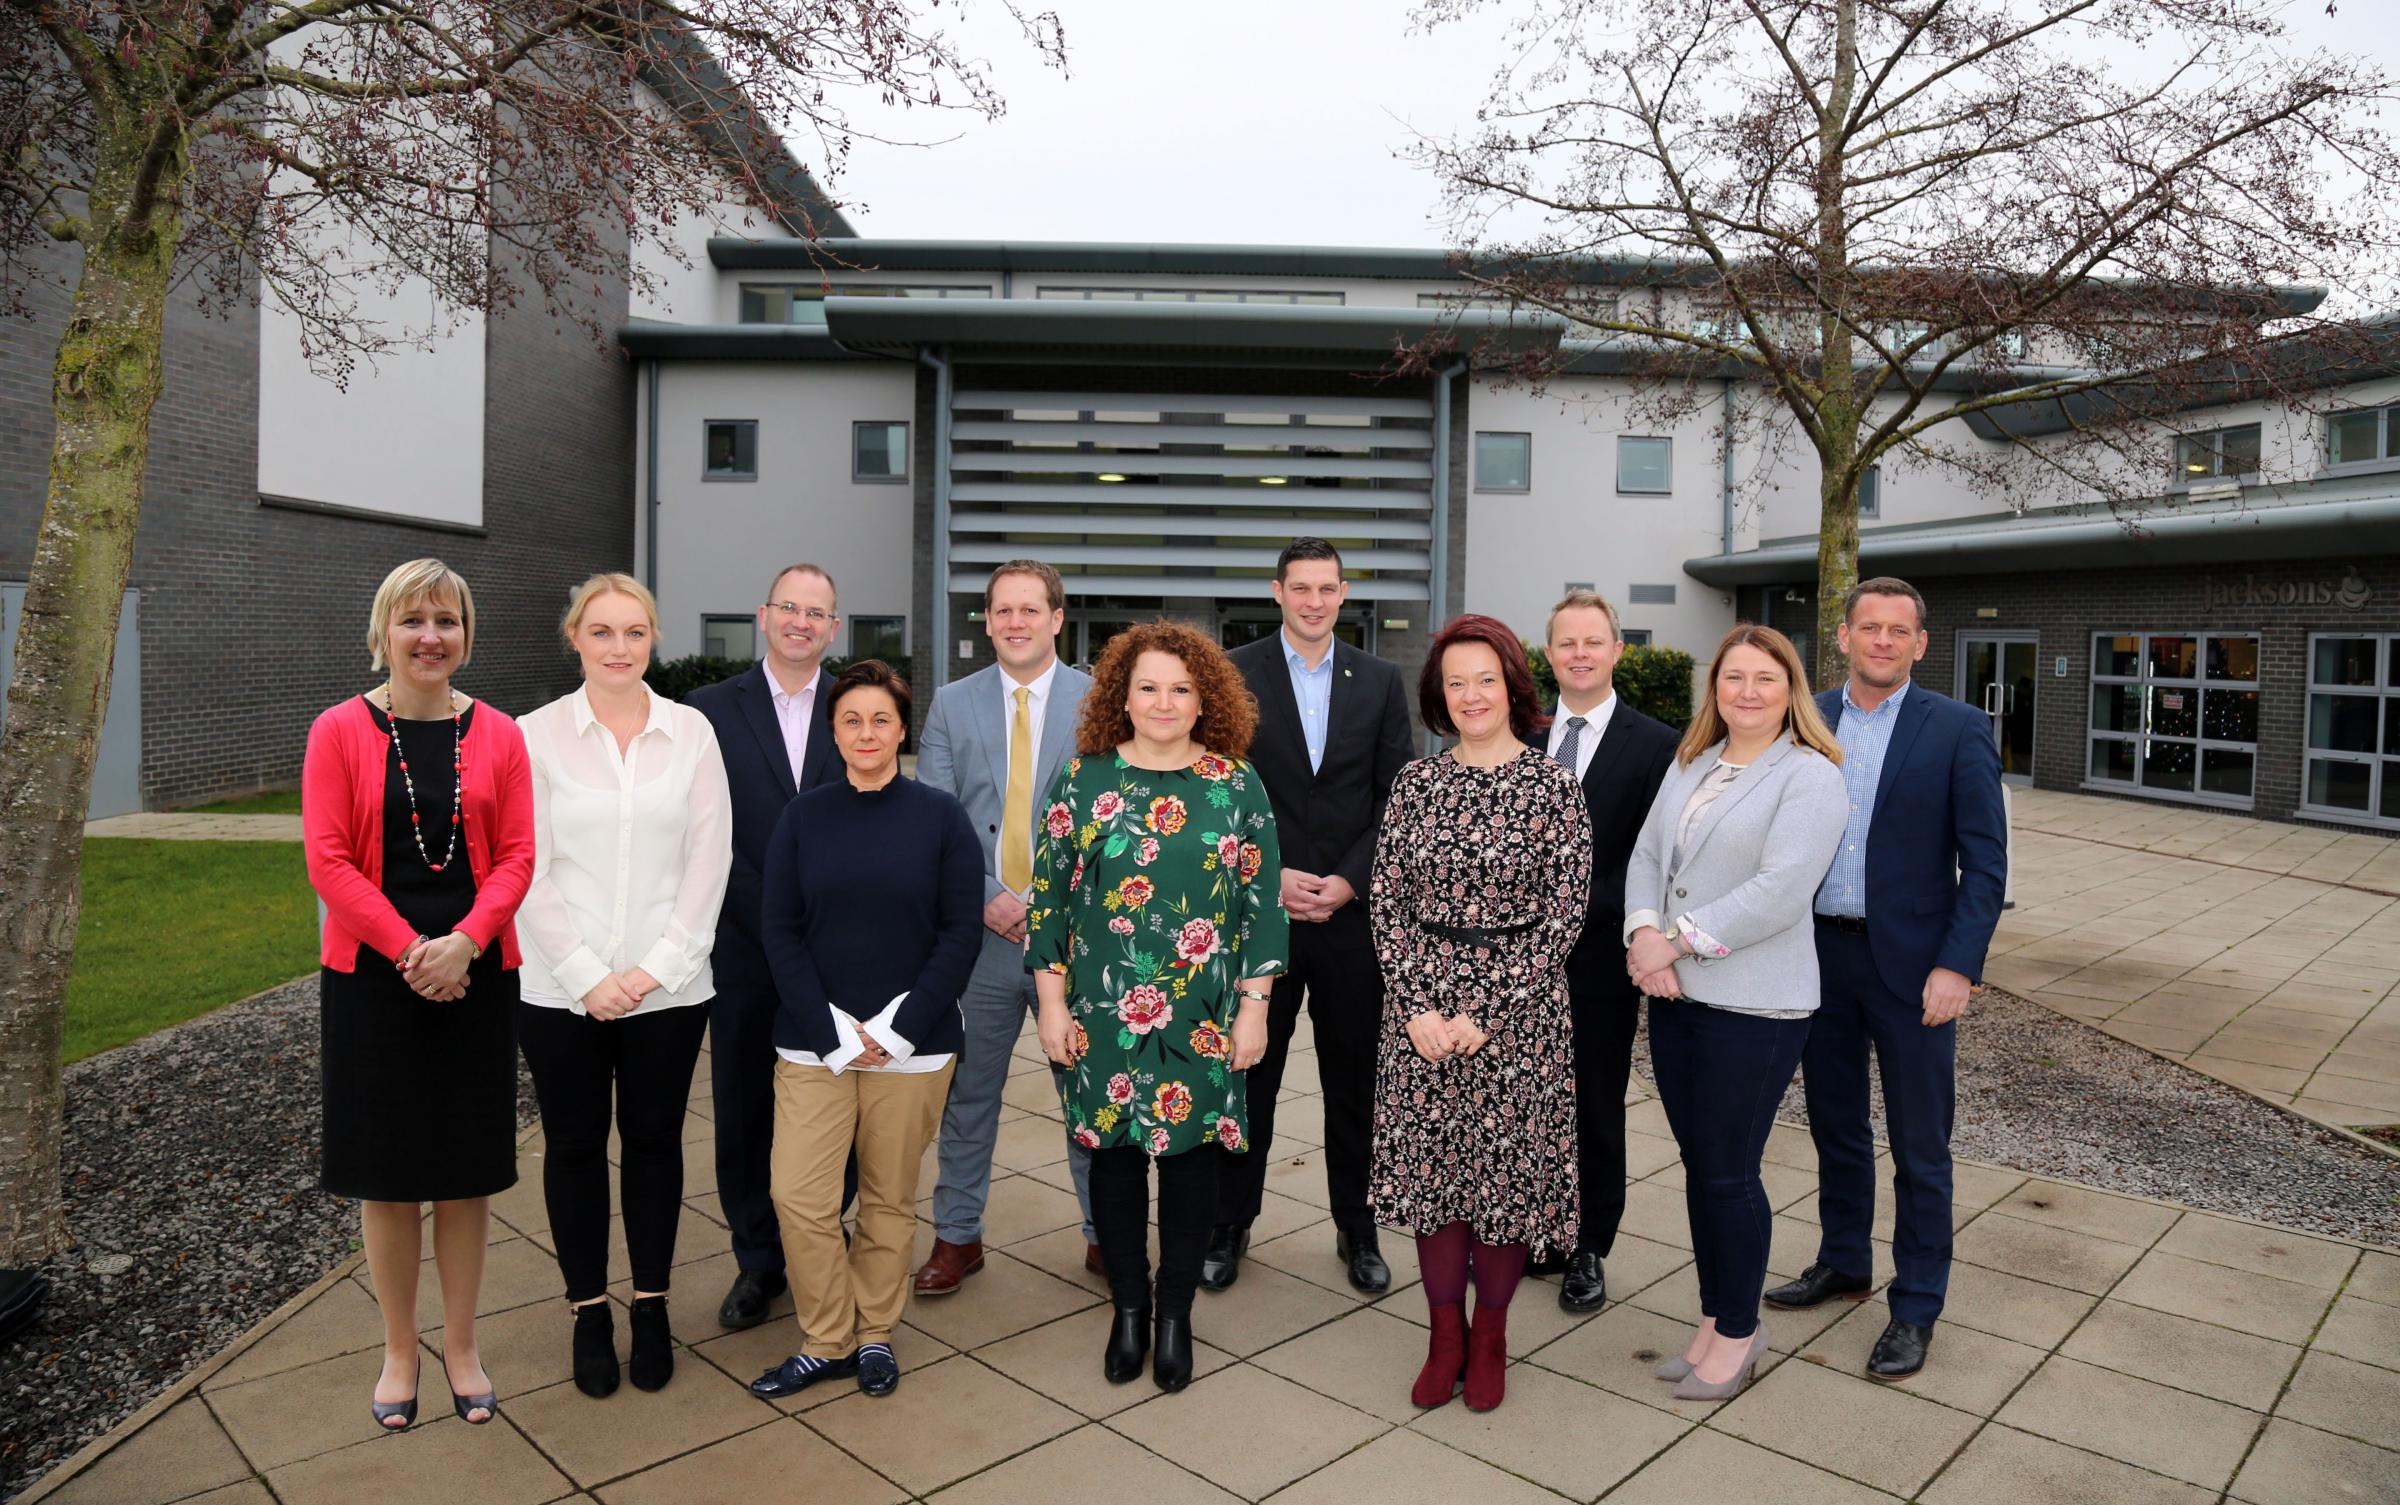 LINE UP: Aycliffe Business Park Community board, Sarah Slaven, Lisa Fleming, James Goodliffe, Lee Harris, Kerina Clark, Stephen Gosnay, Pamela Petty, Ben Healey, Sharon Hutchinson and Martin Walker